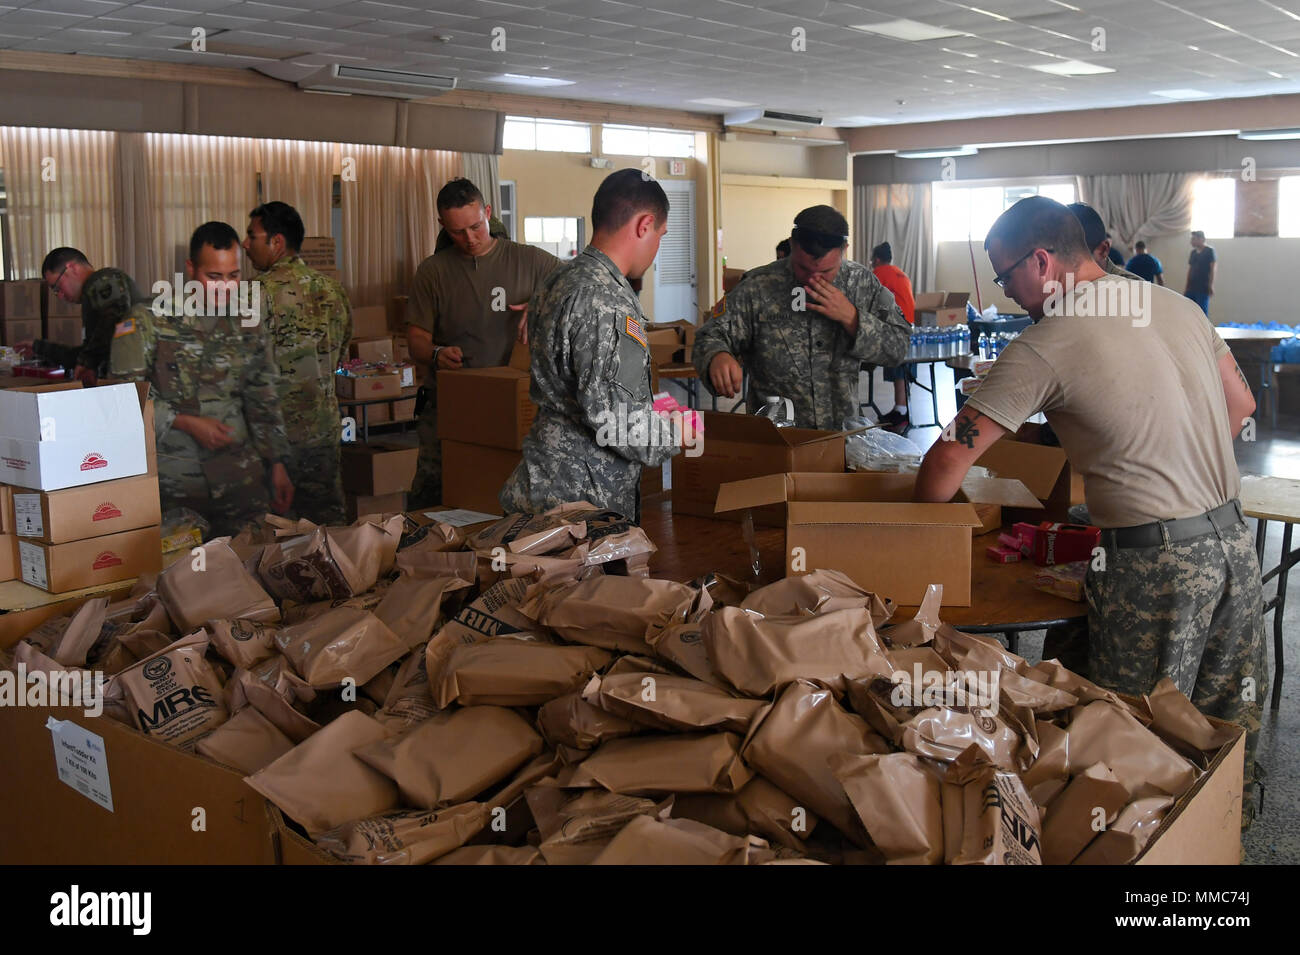 Soldiers with the Company C., 6th Battalion, 101st General Support Aviation Battalion, 101st Combat Aviation Brigade, 101st Airborne Division (Air Assault) repackage food and water at a community center October 4, 2017 in Ceiba, Puerto Rico. The Soldiers are assisting FEMA with relief efforts after the devastating effects of Hurricane Maria. (U.S. Army photo by Sgt. Marcus Floyd, 101st Combat Aviation Brigade) - Stock Image